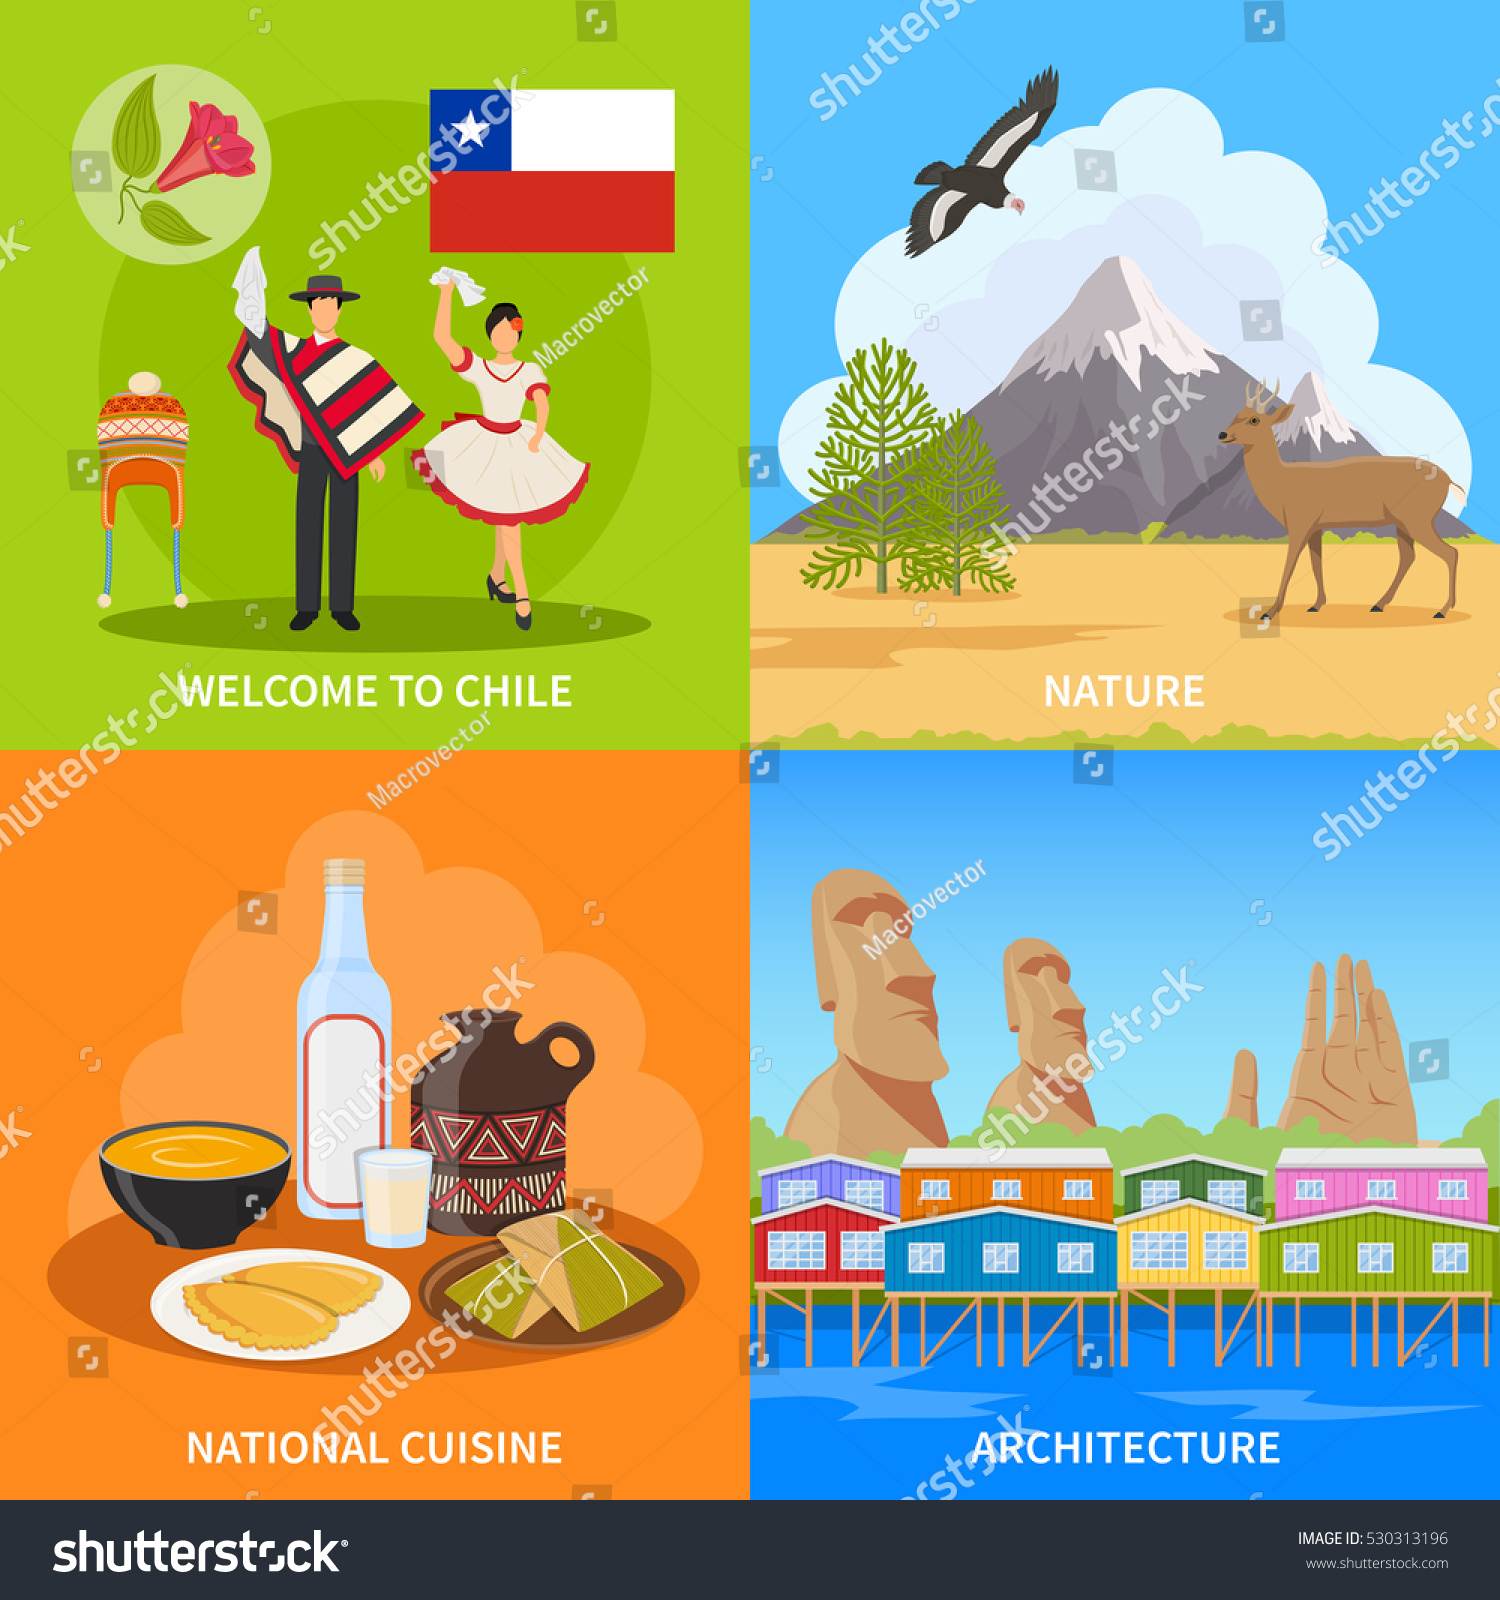 Chile 2x2 design concept set nature stock vector 530313196 chile 2x2 design concept set of nature architecture national cuisine and costume flat compositions vector illustration biocorpaavc Images